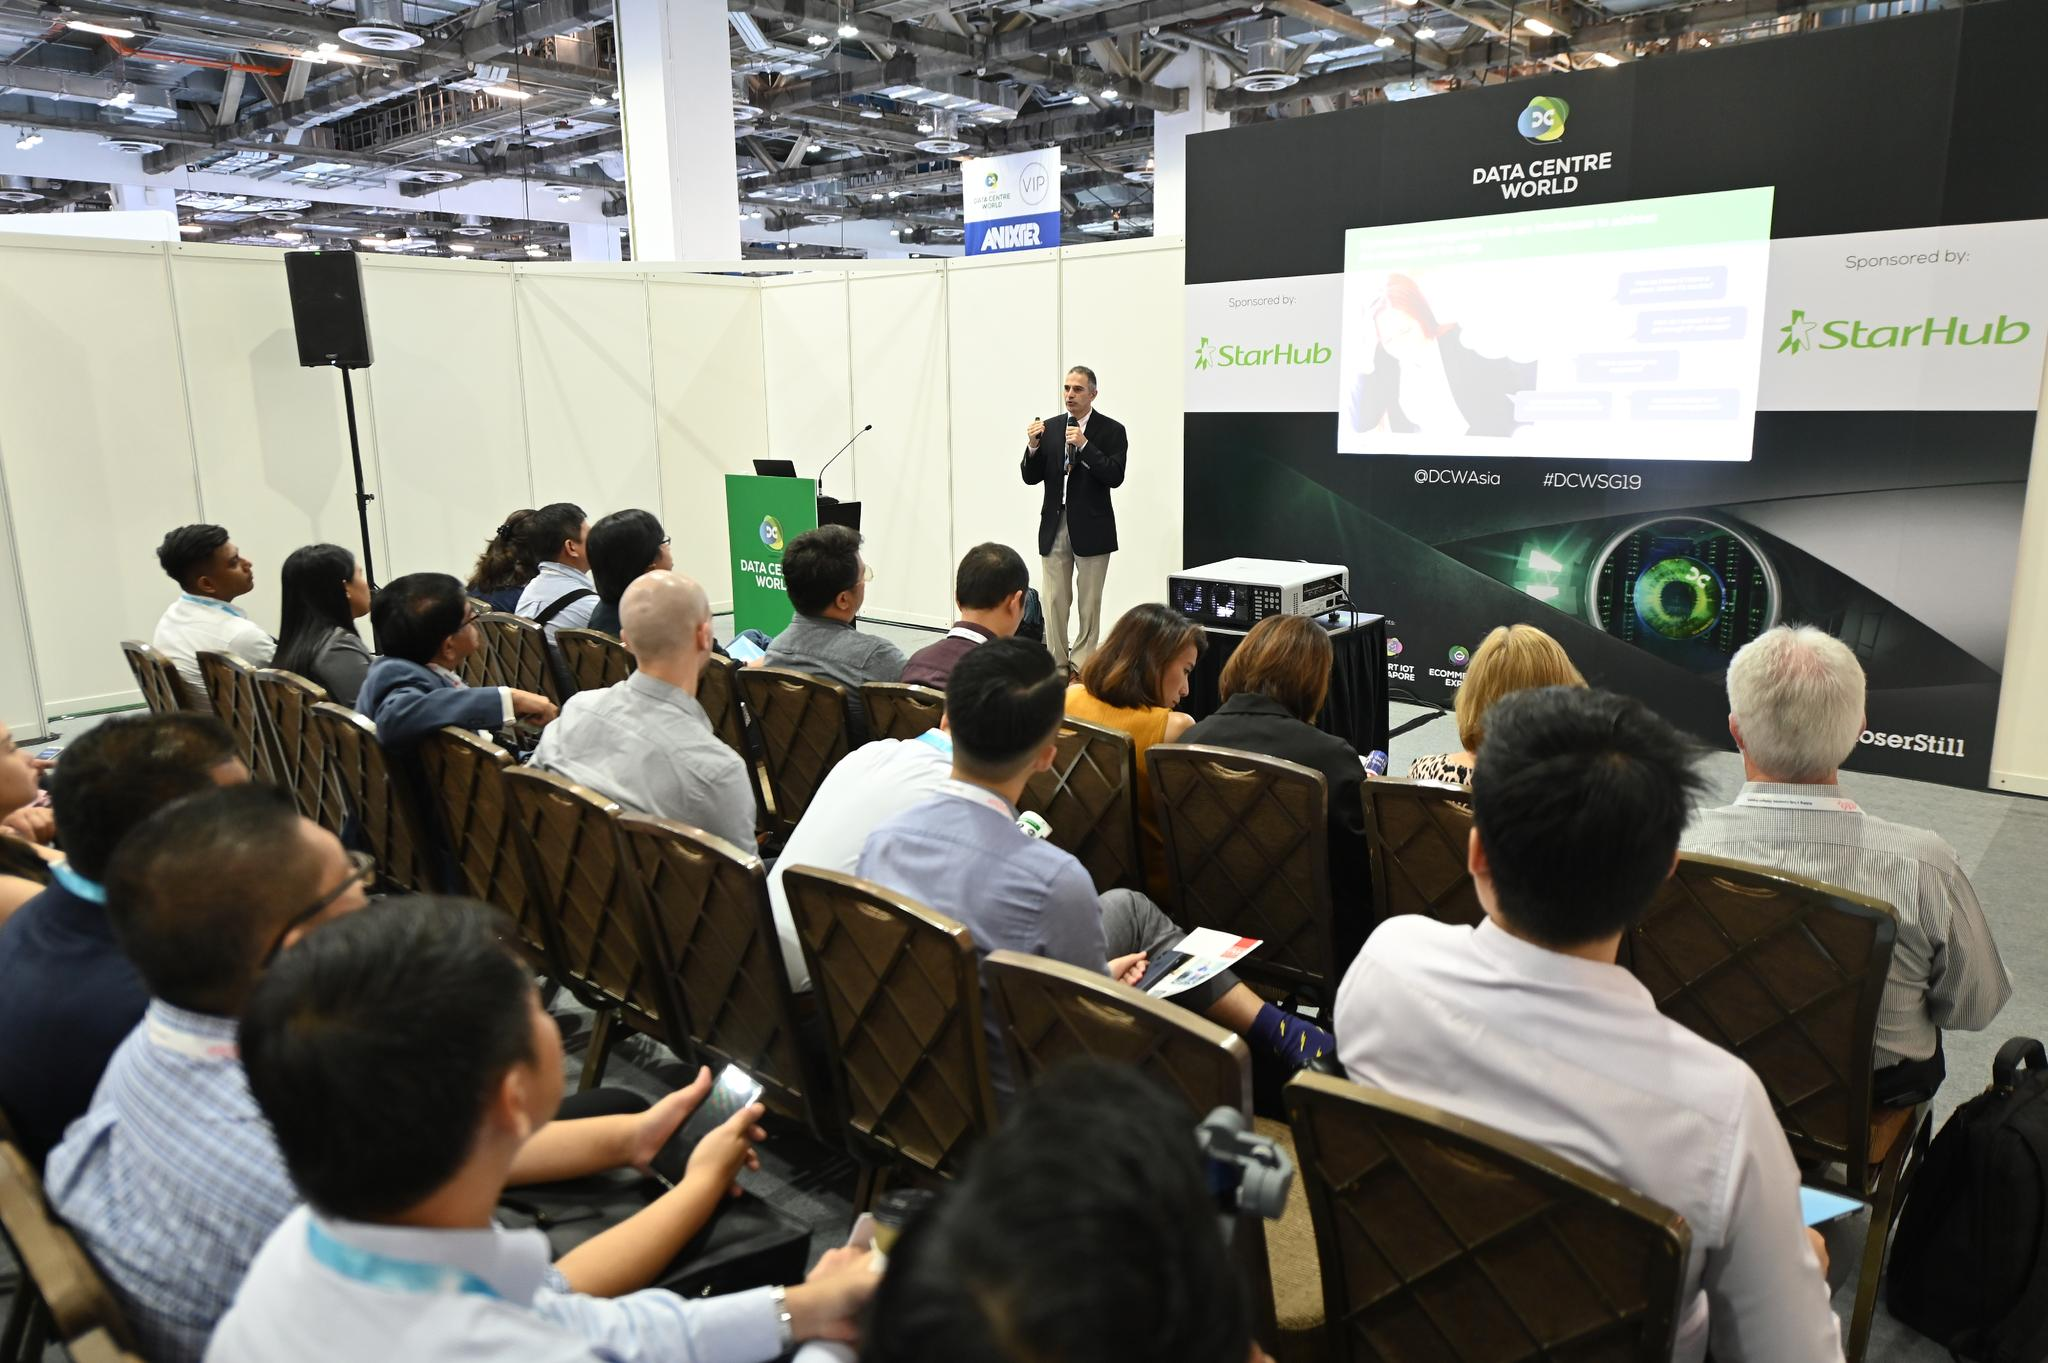 DATA CENTRE WORLD KEYNOTE THEATRE